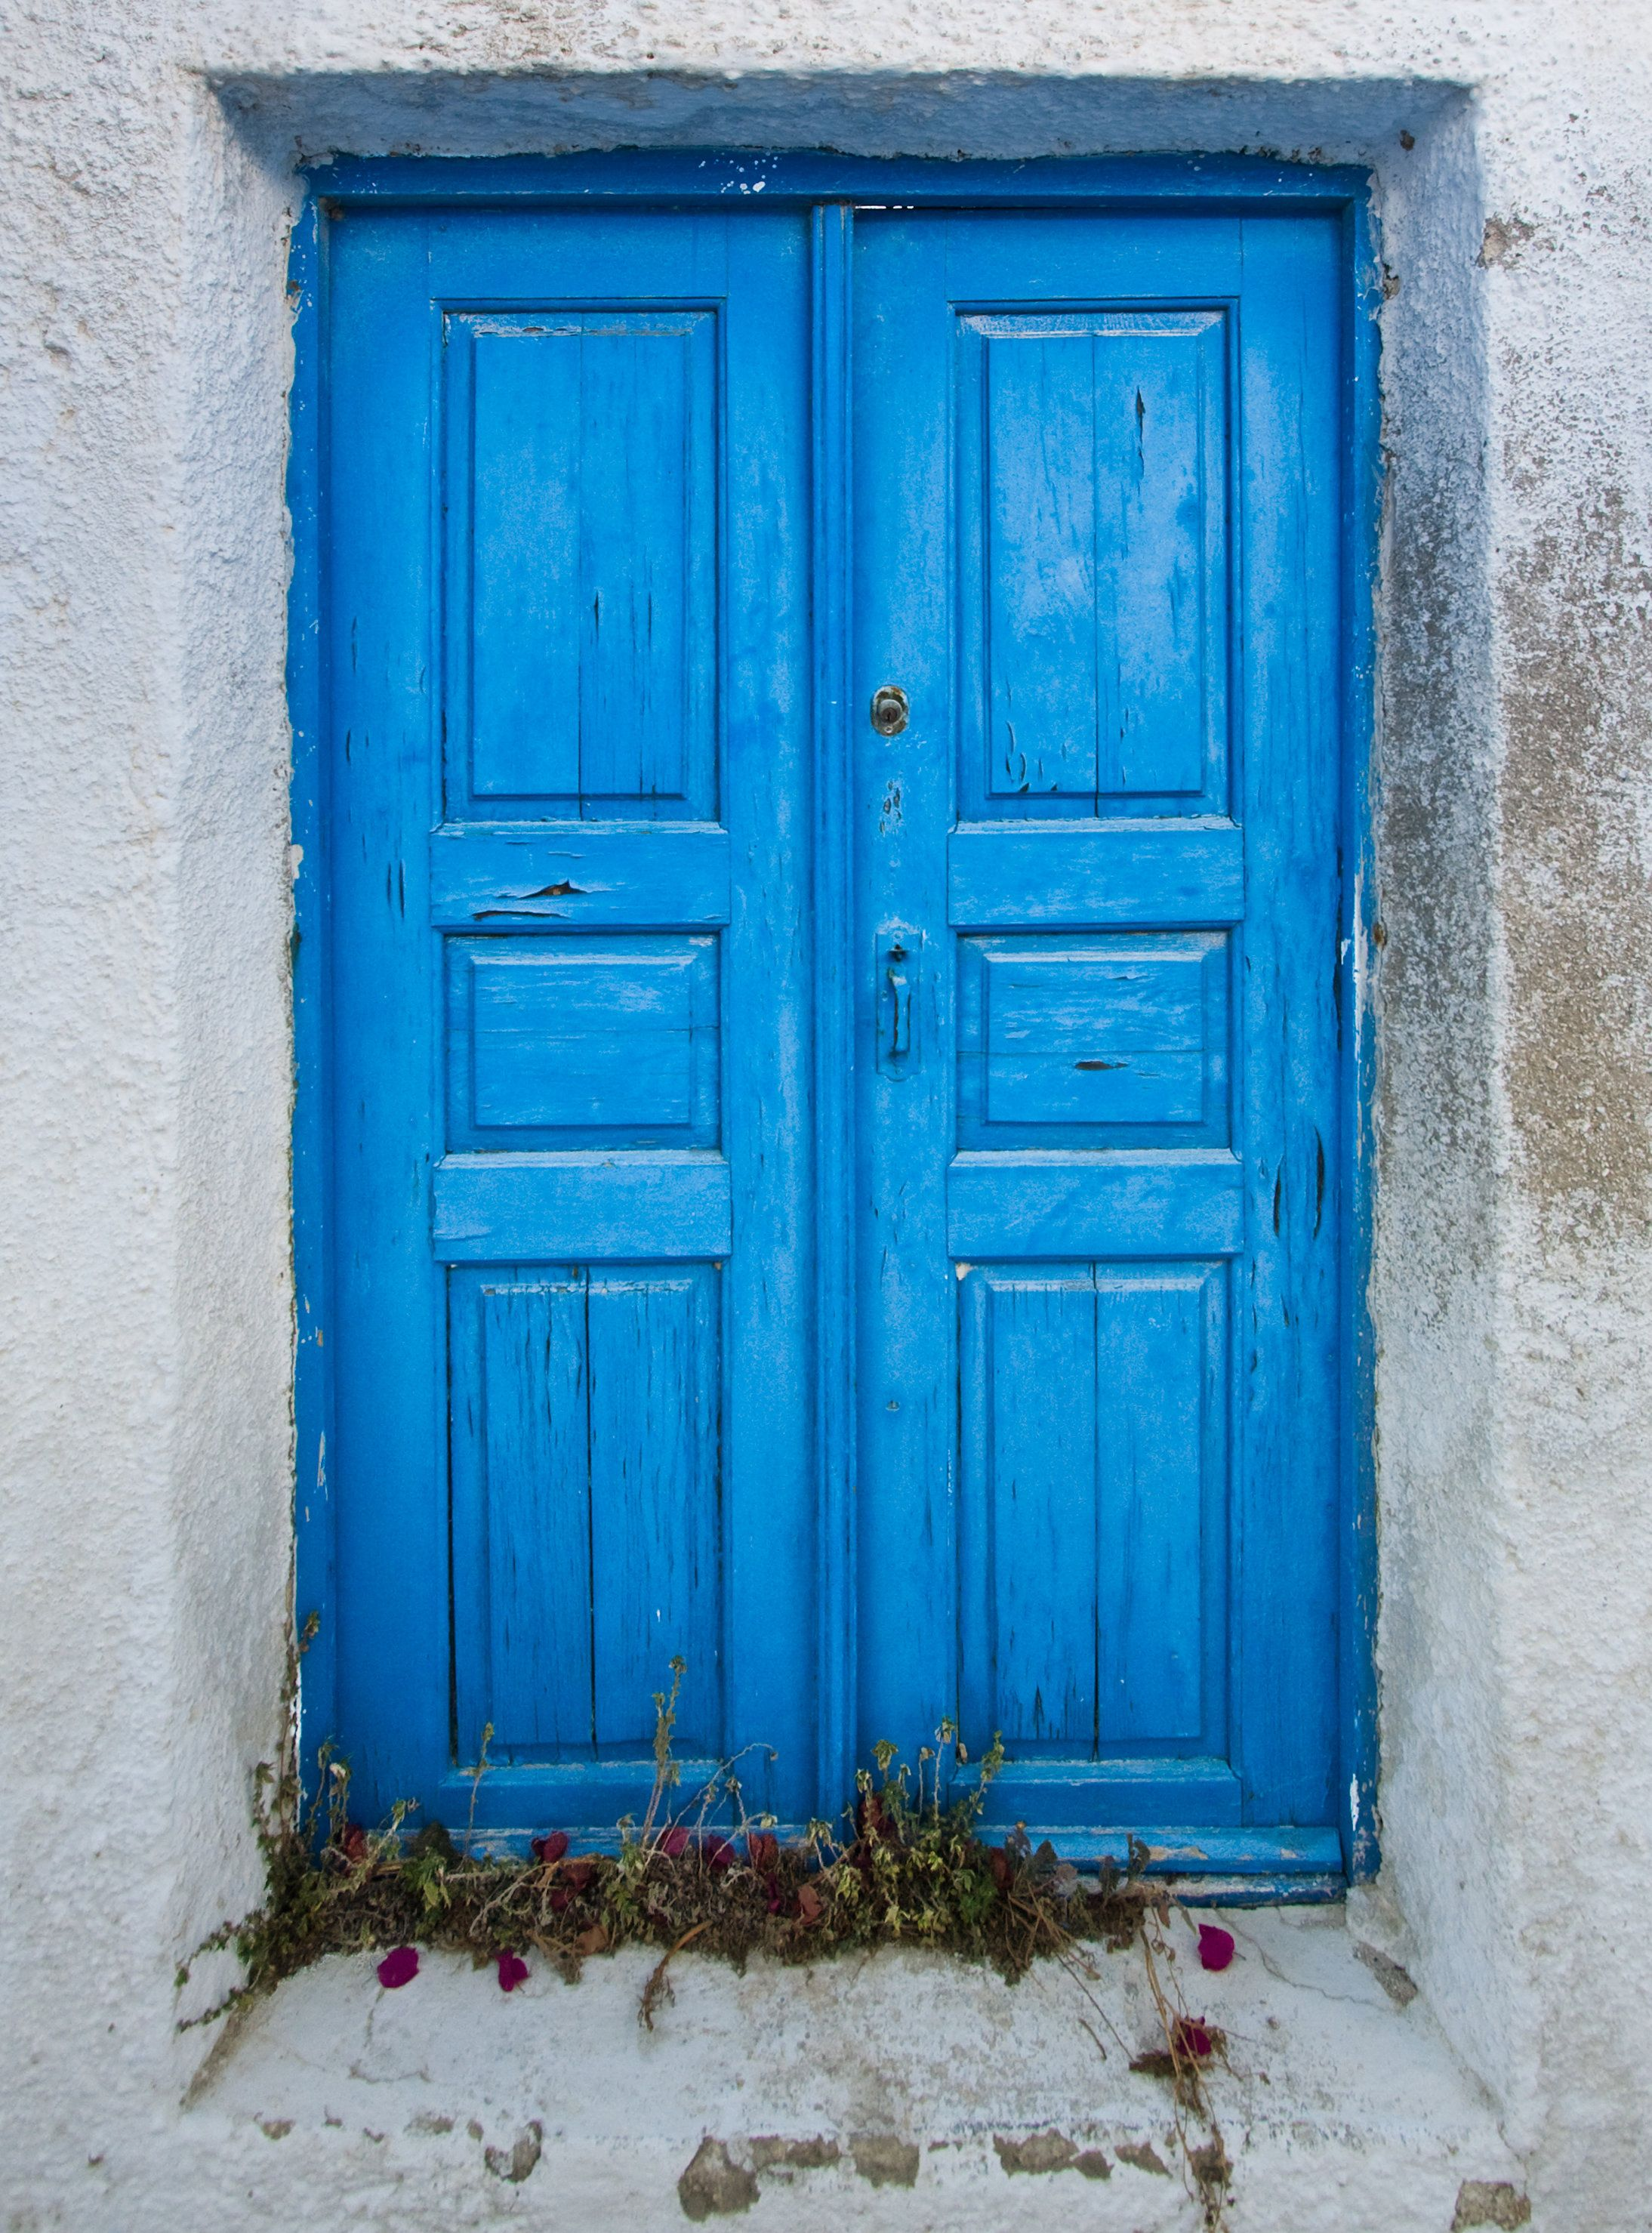 High Quality Blue Door Images | Door, Blue, Wood, Vintage Texture   JPG